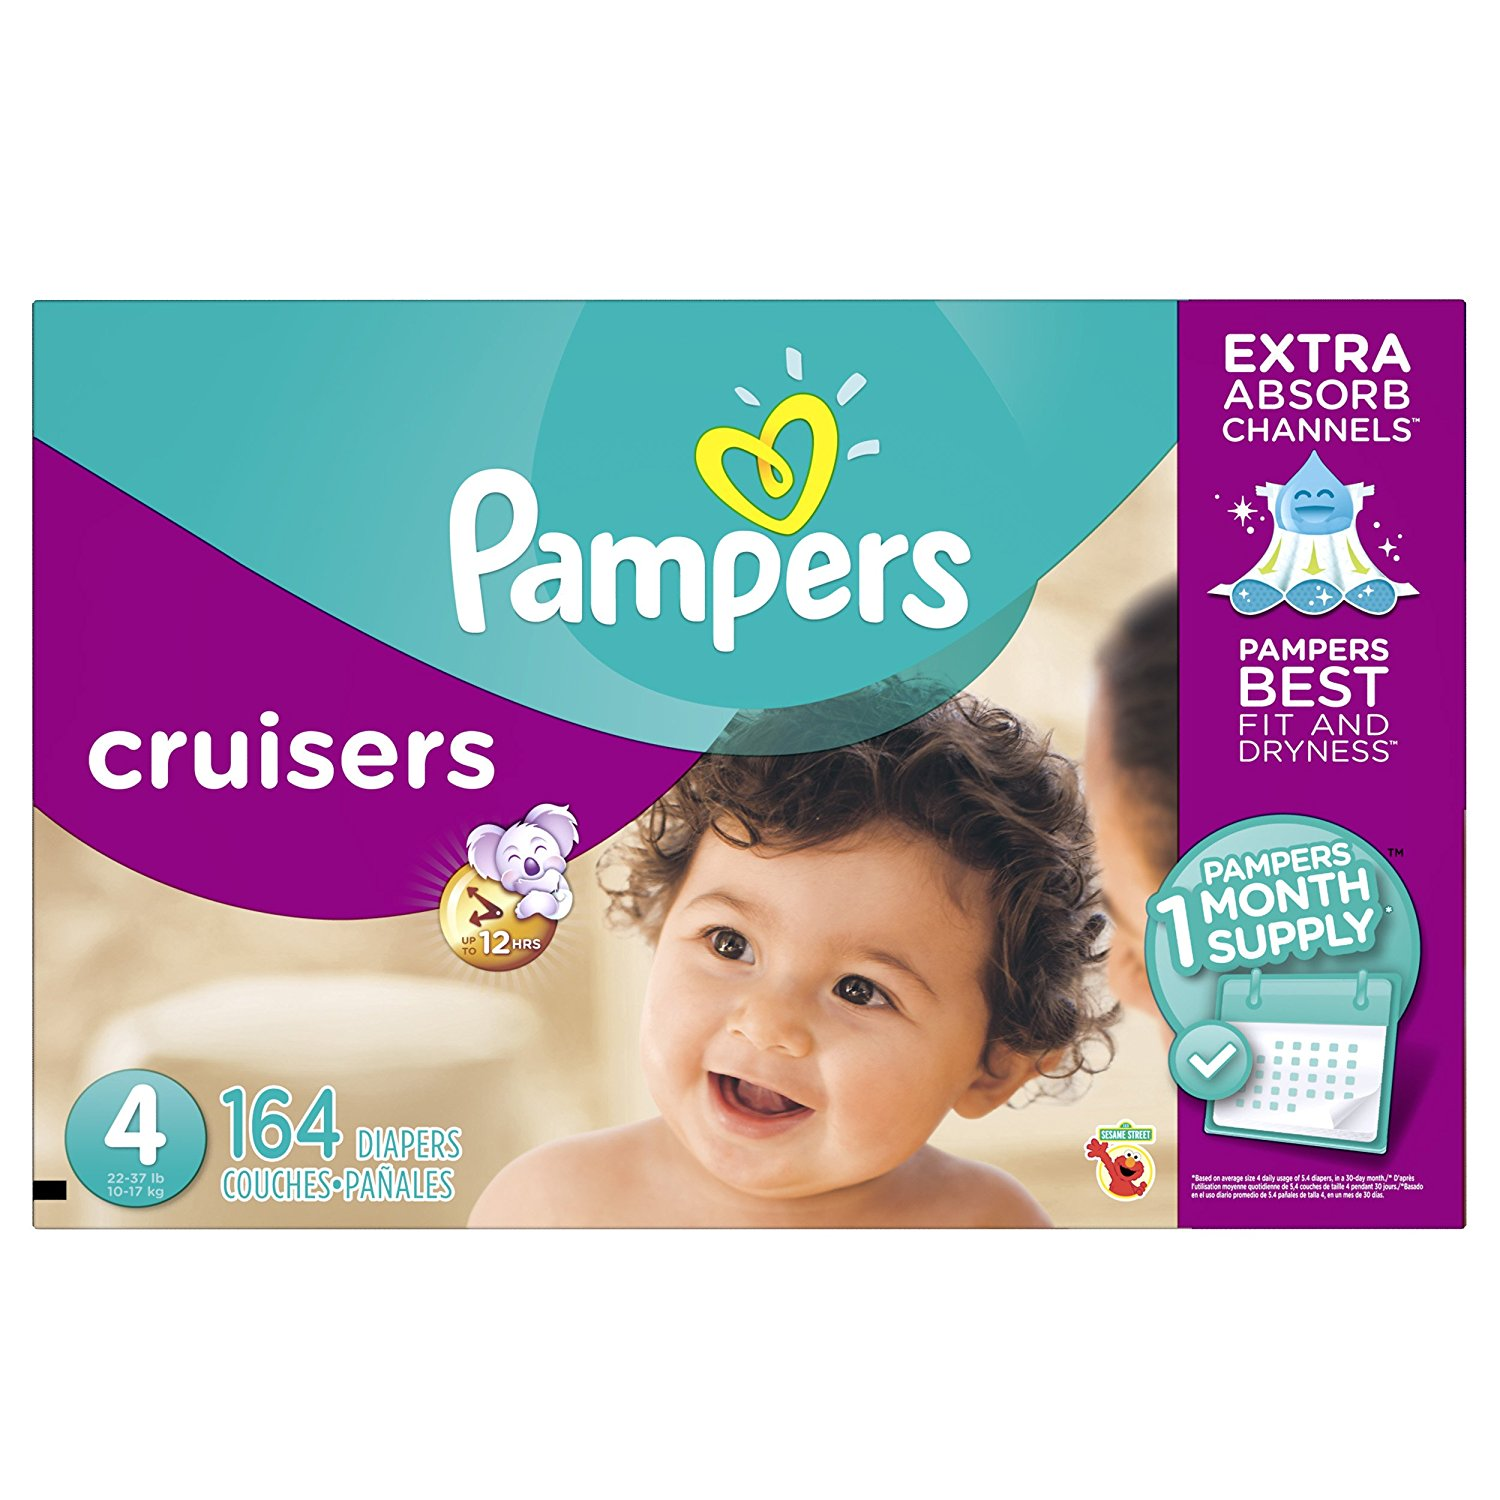 Pampers Cruisers Disposable Diapers Size 4, 164 Count, ECONOMY PACK PLUS by Discount Market Place